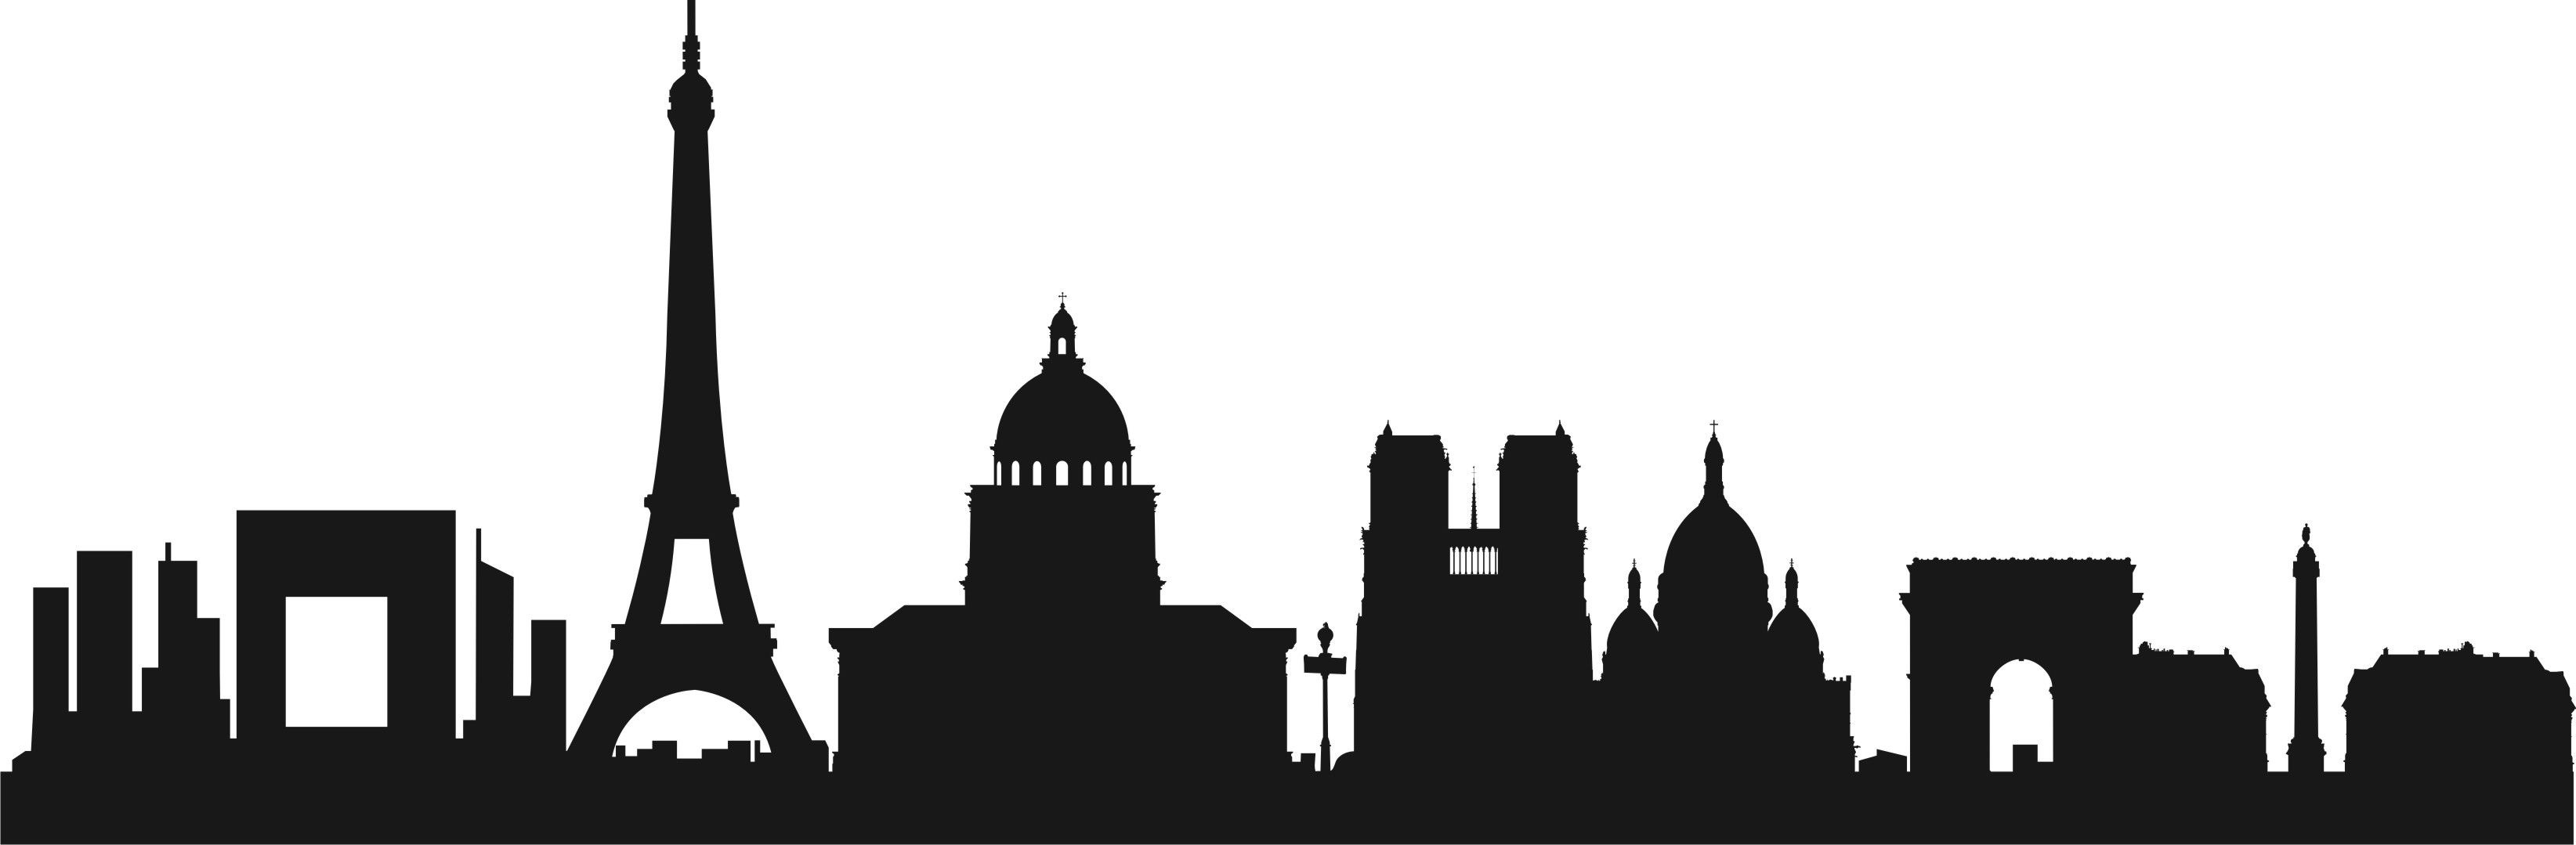 3288x1079 The Correct Order Of London Skyline With Shard Cross